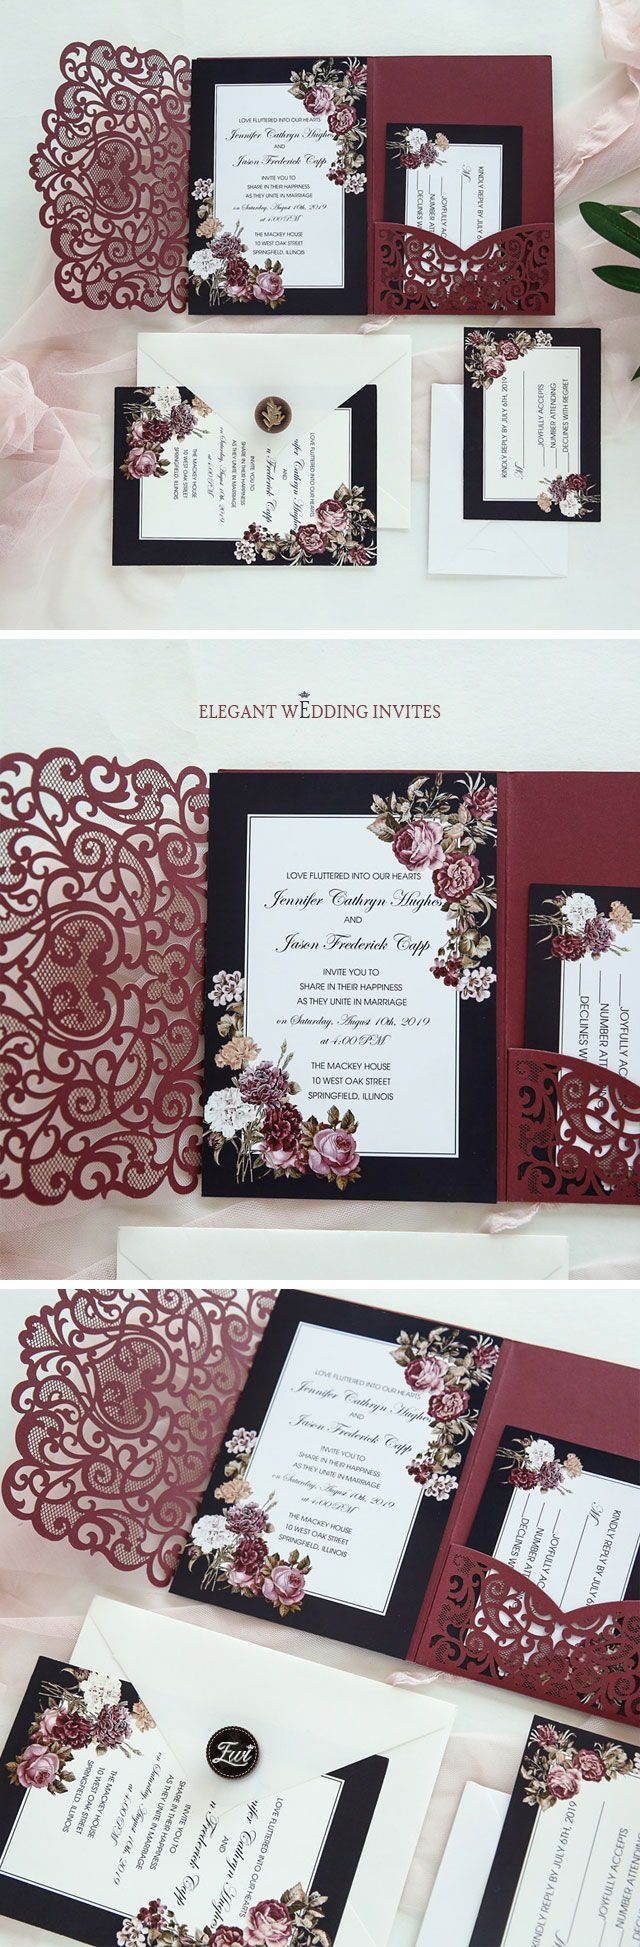 Blooms Around Every Turn-Burgundy Laser Cut Pocket Fold invitation with victorian inspired floral EWWS243